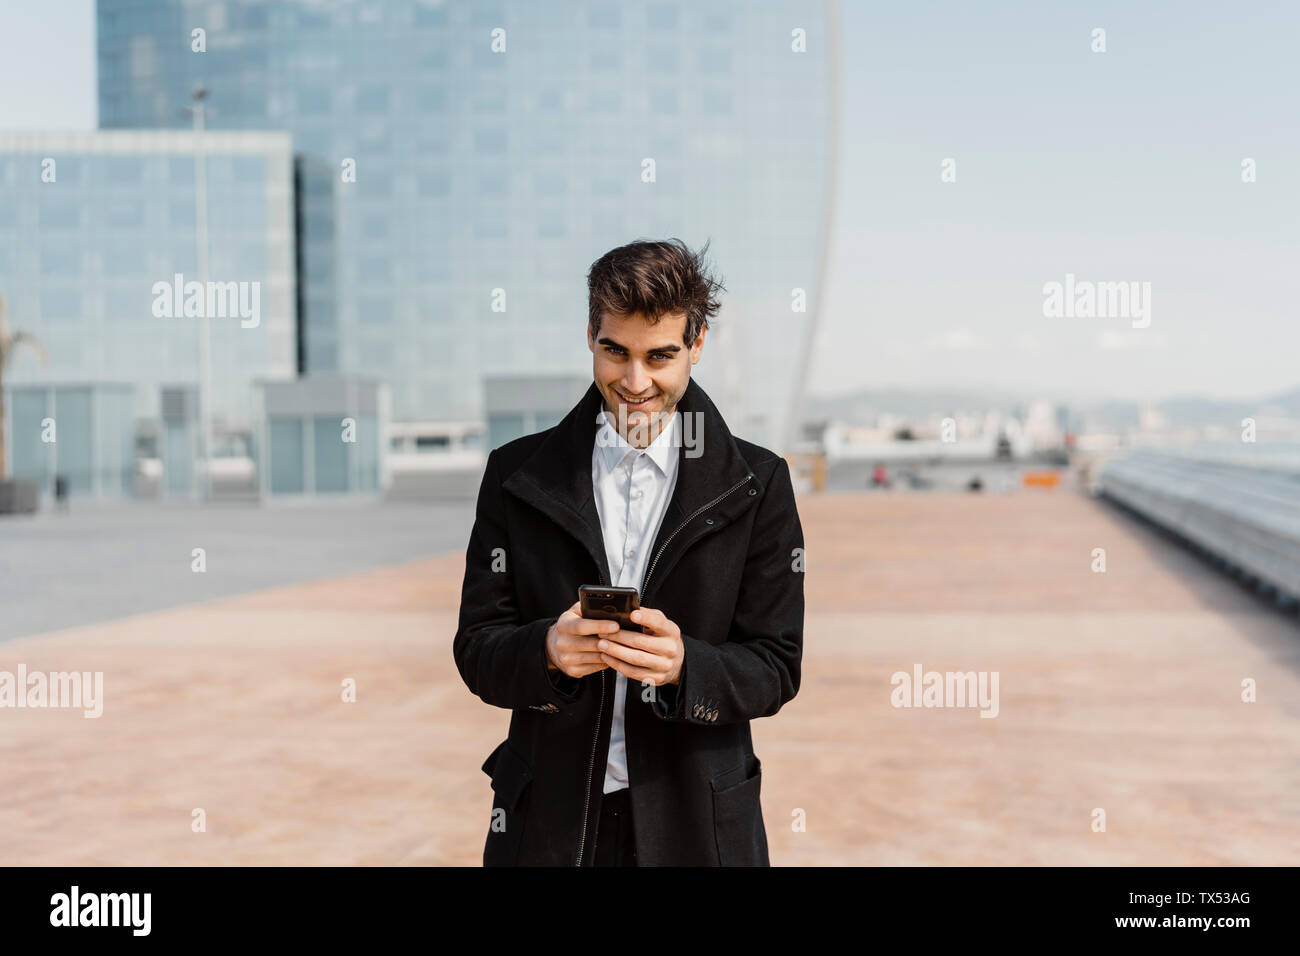 Portrait of smiling businessman holding cell phone in the city - Stock Image